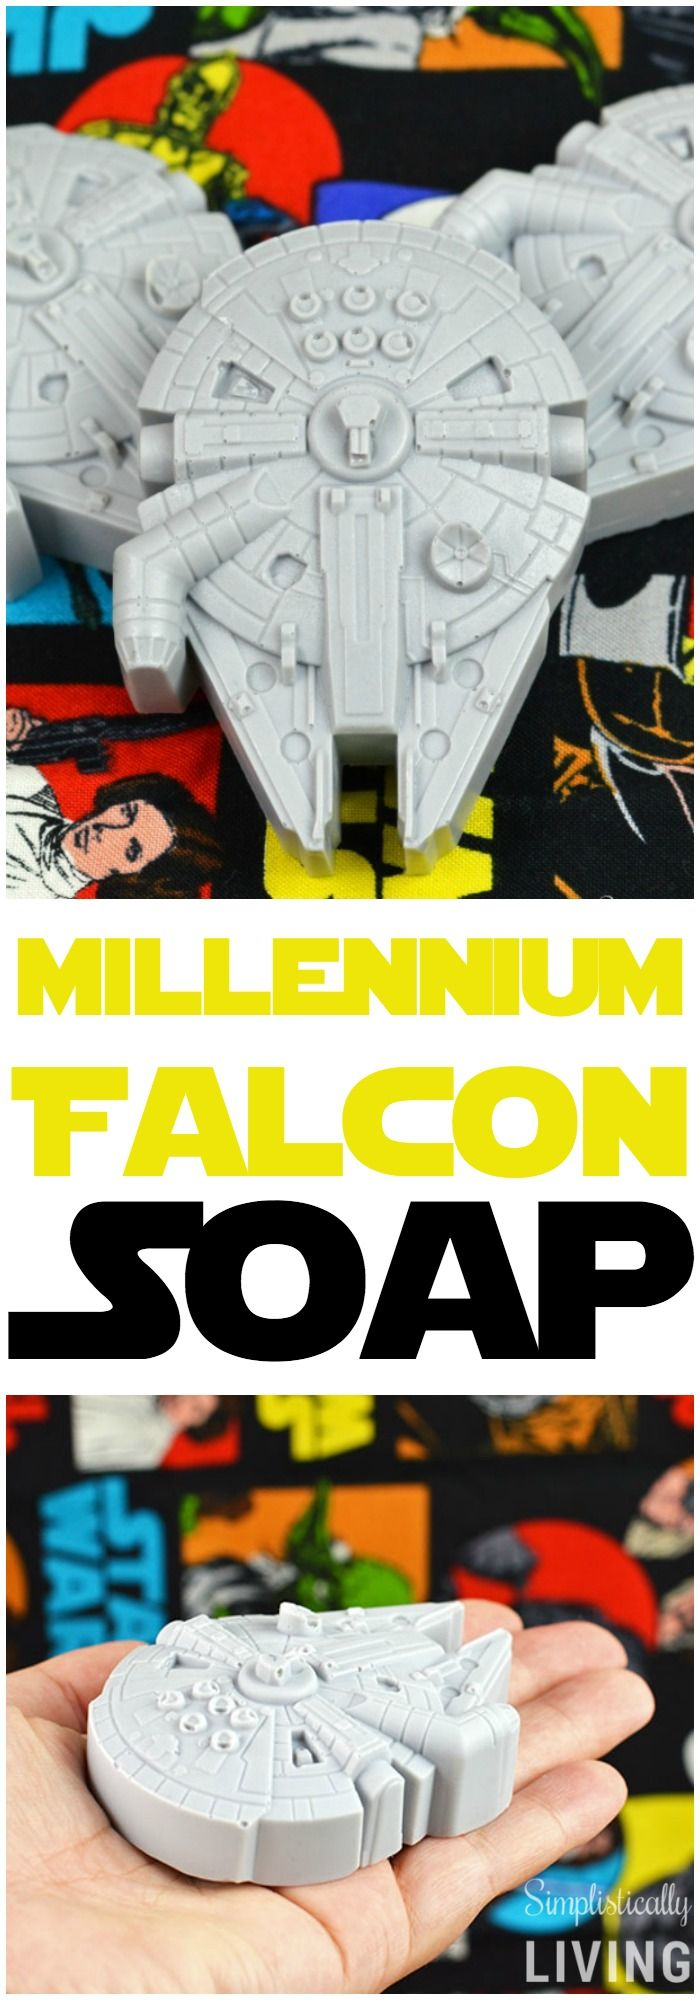 My r2 bb8 heart design is now a t shirt you can buy http tee pub - Millennium Falcon Soap By Brittanie On Simplistically Living Now You Can Have Your Very Own